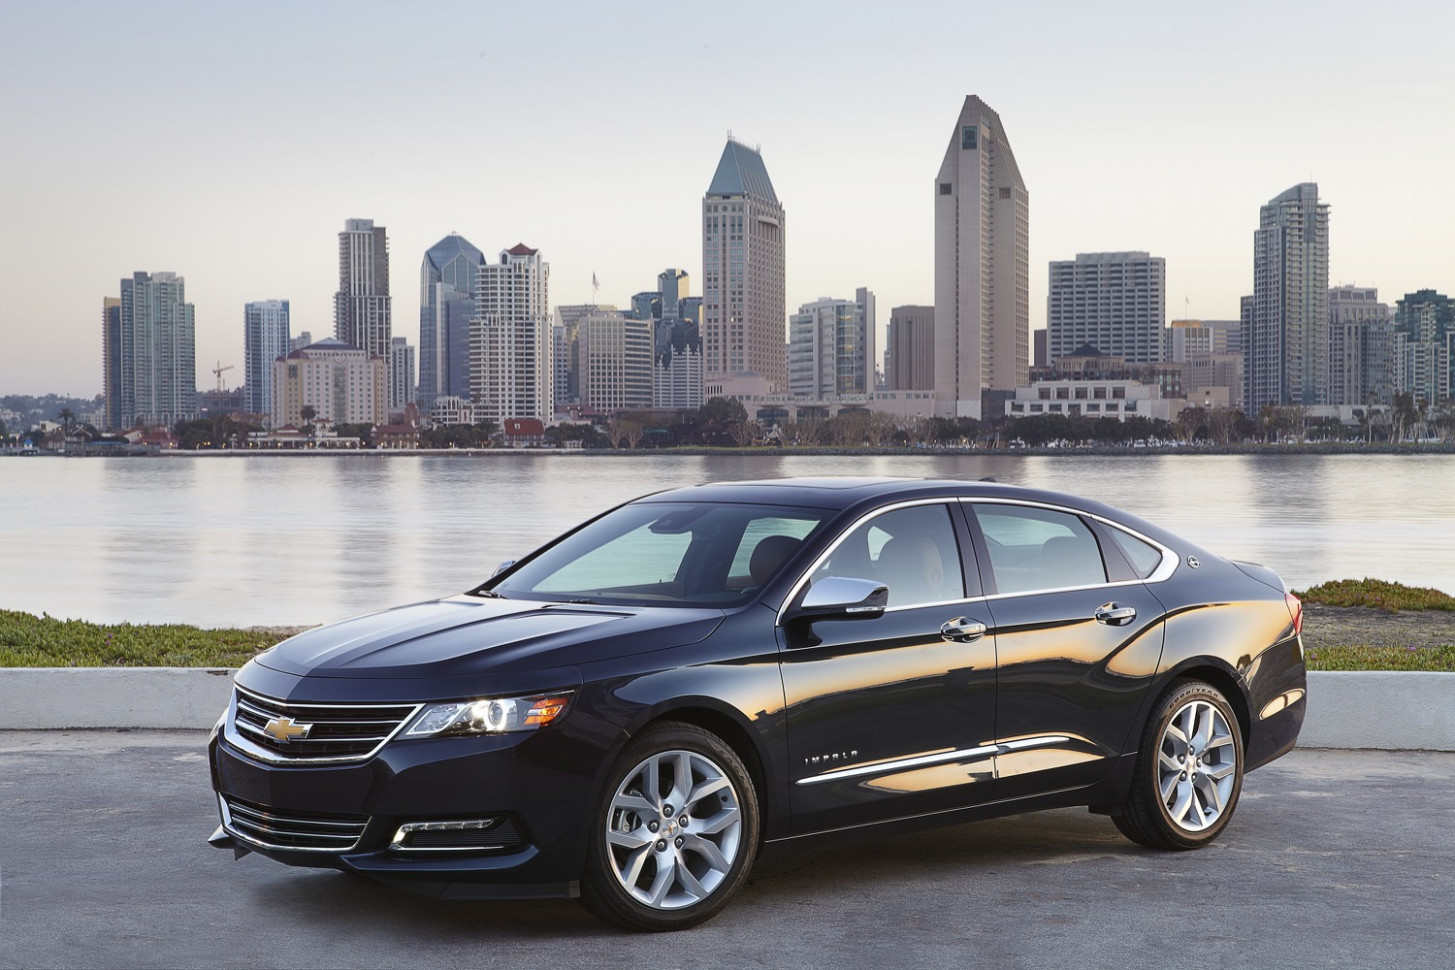 7 Chevrolet Impala Gets $7,7 Price Hike For Base Model | GM ..